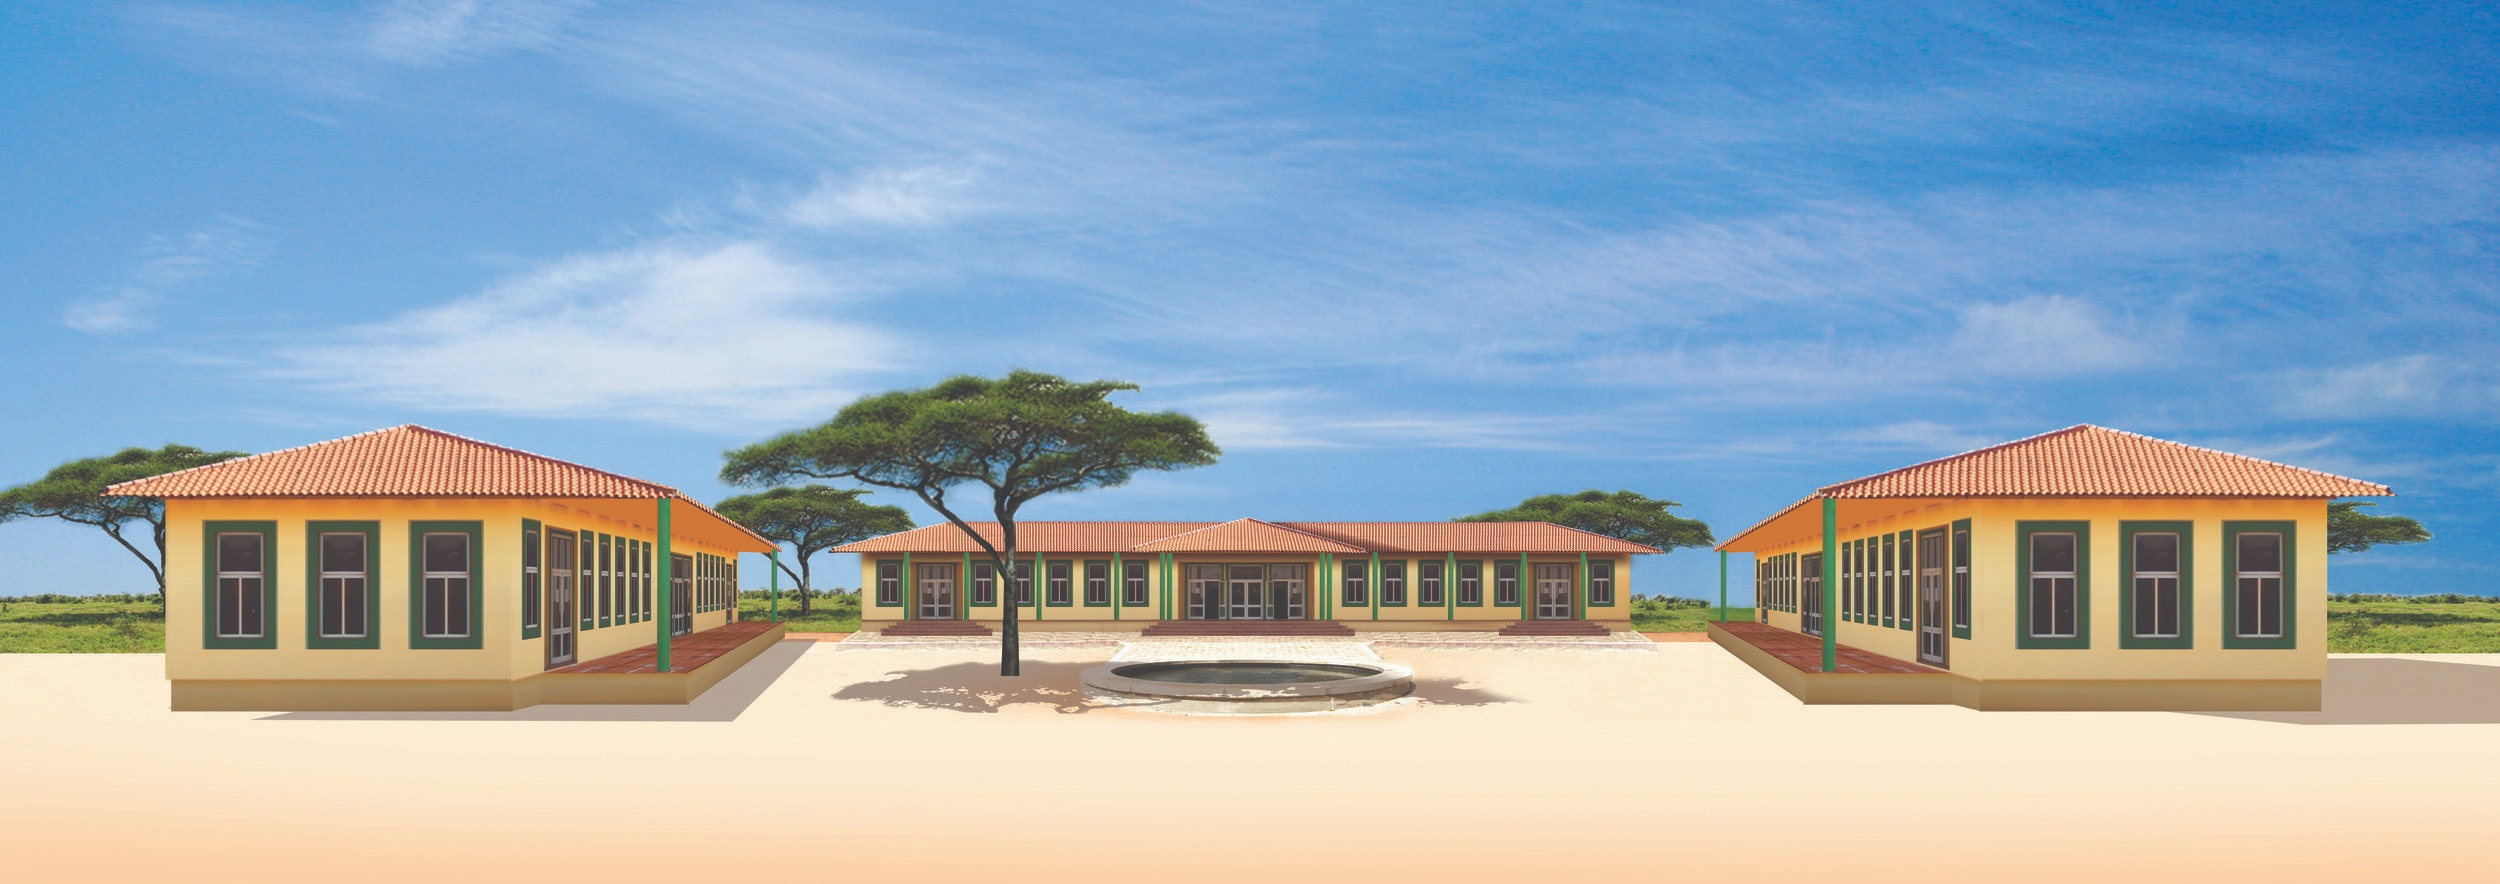 The new campus in Bissau will serve up to 1,000 students each year.